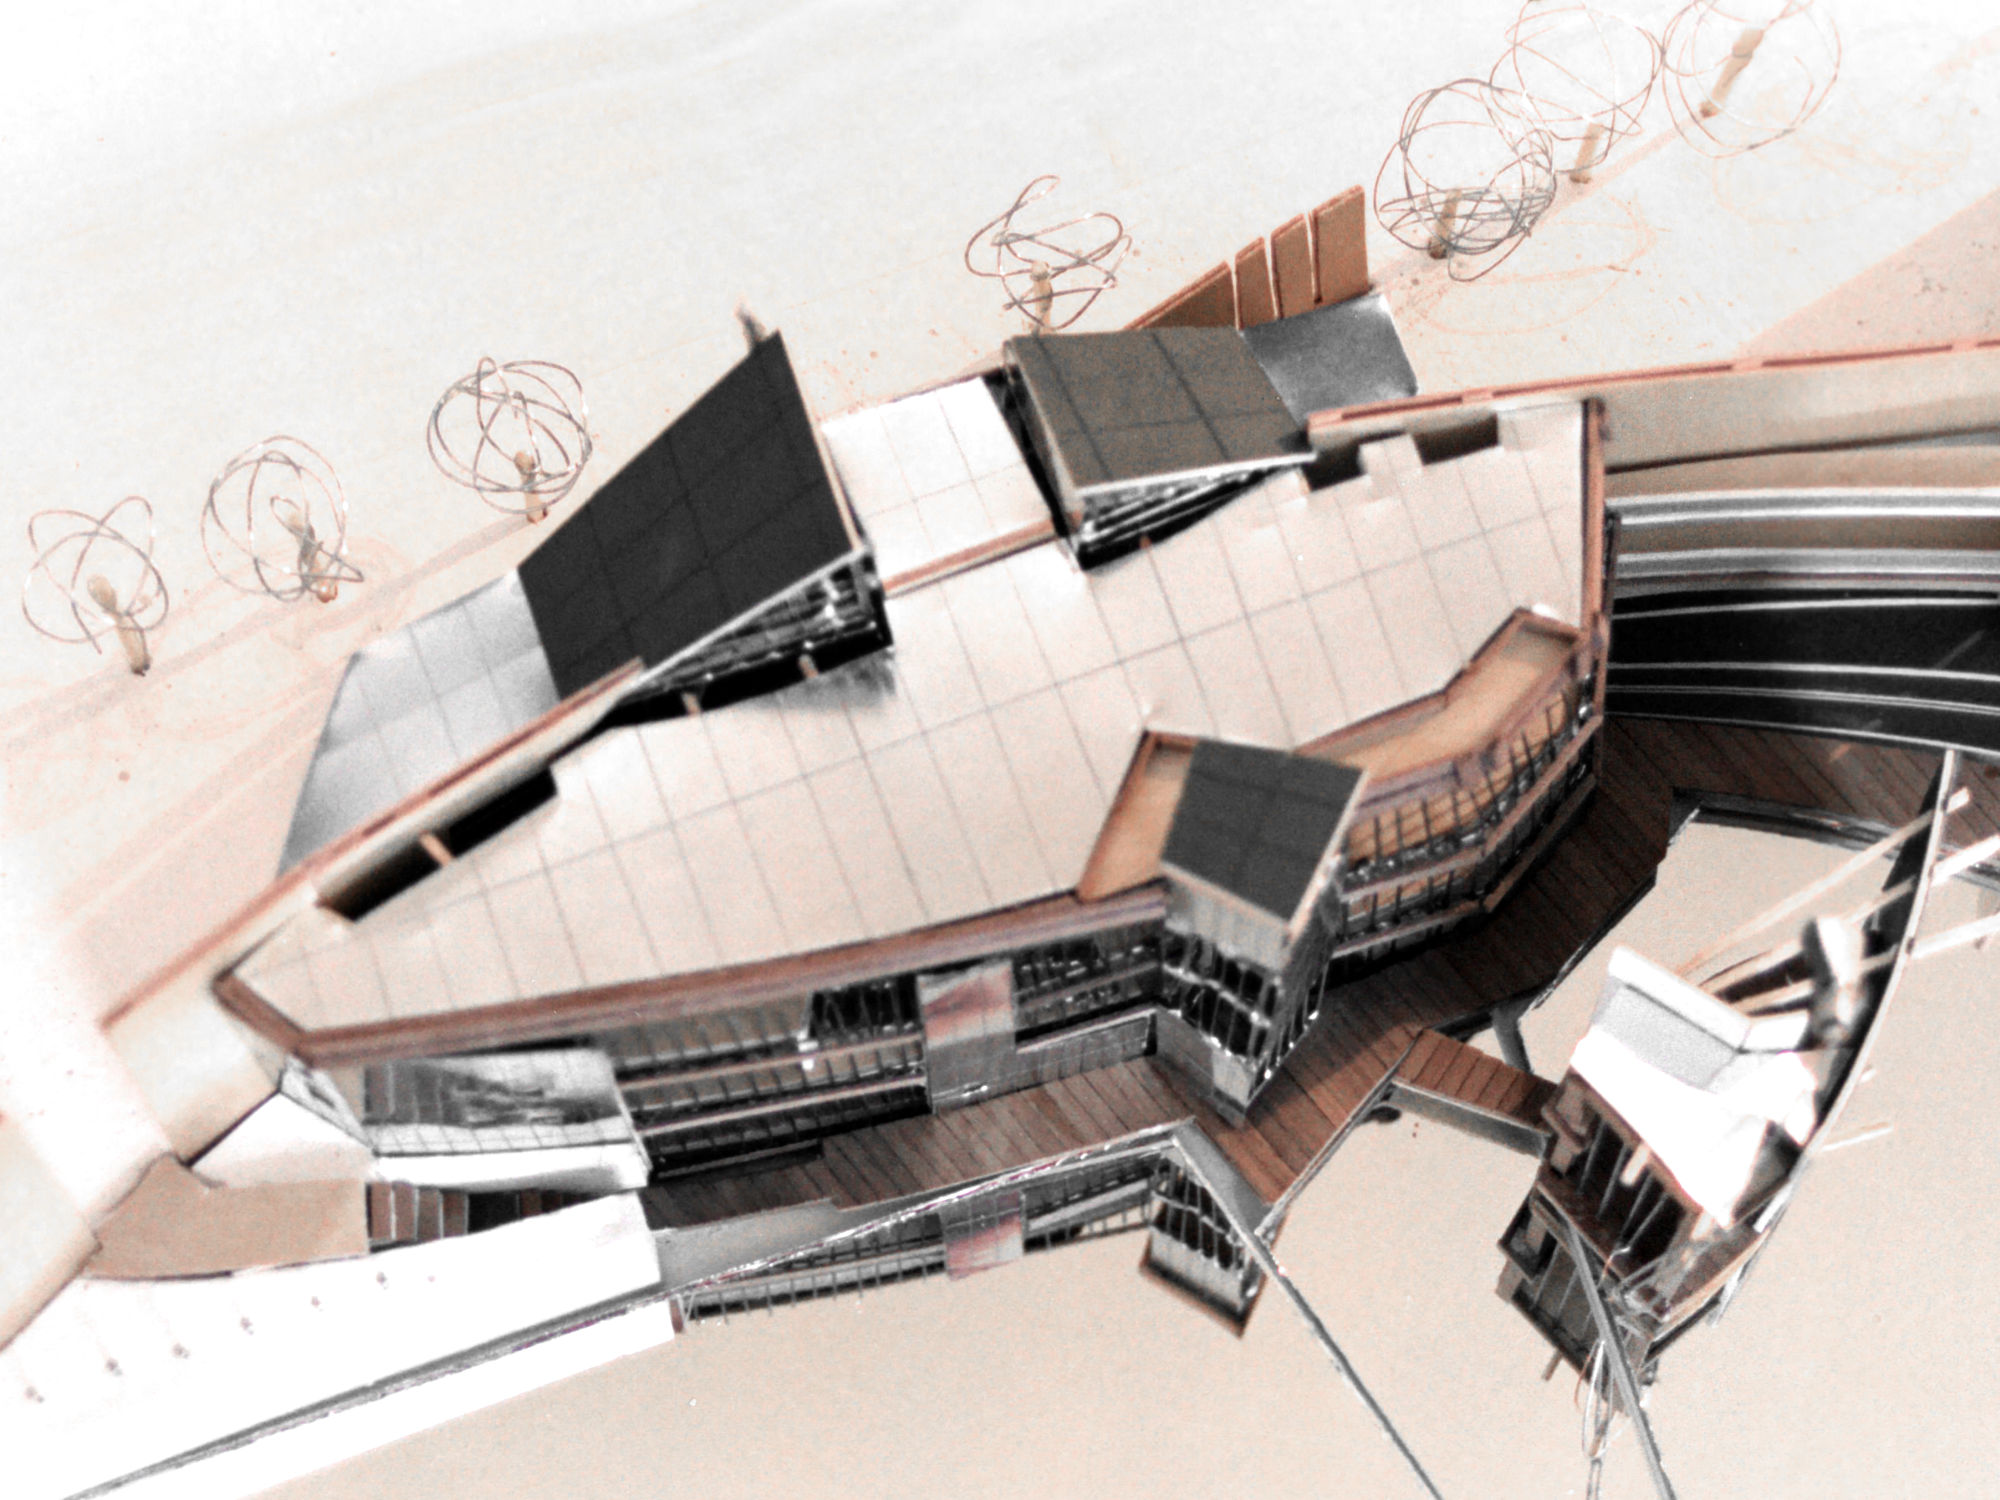 Richard Conner Architect Artist Sound Gallery Aerial Close 4x3 2000px 80PCC.jpg